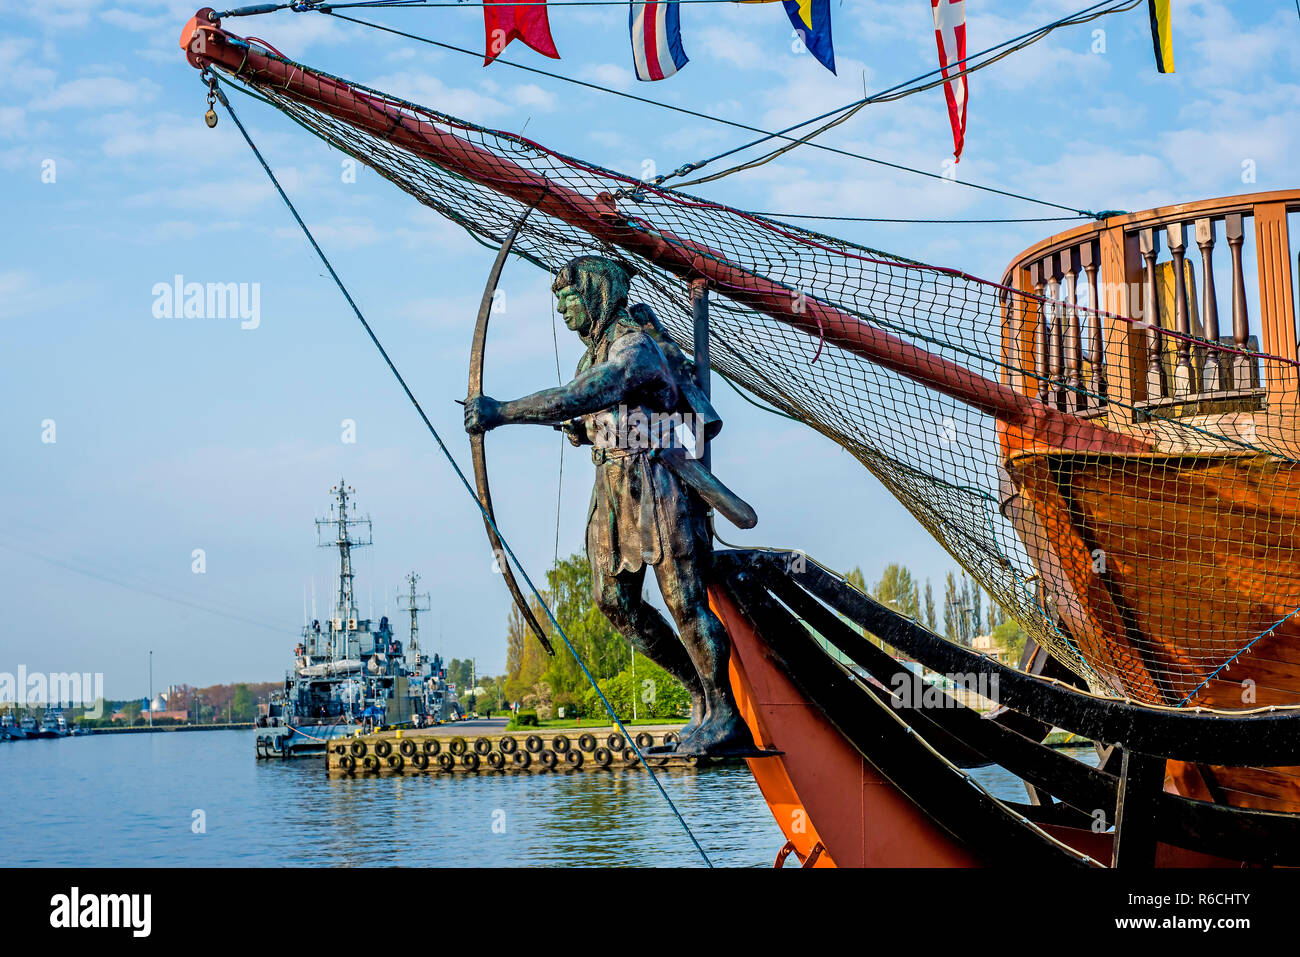 Swinoujscie Port, Poland, Figurehead With Warships Stock Photo